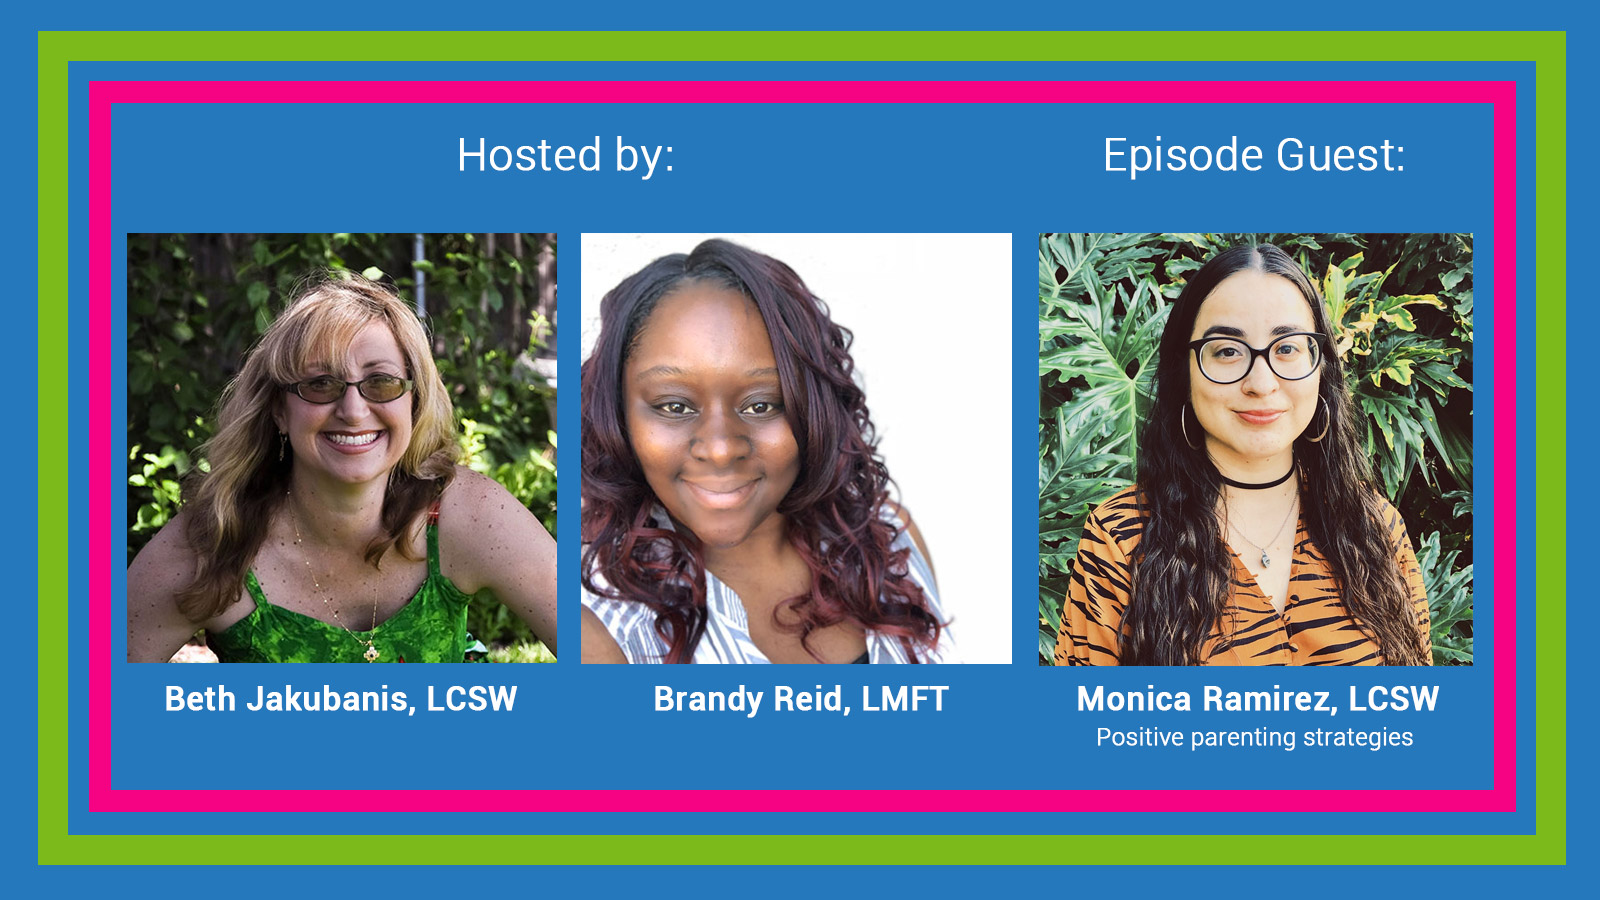 Hosted by: Beth Jakubanis, LCSW and Brandy Reed, LMFT - Episode Guest Monica Ramirez, LMFT